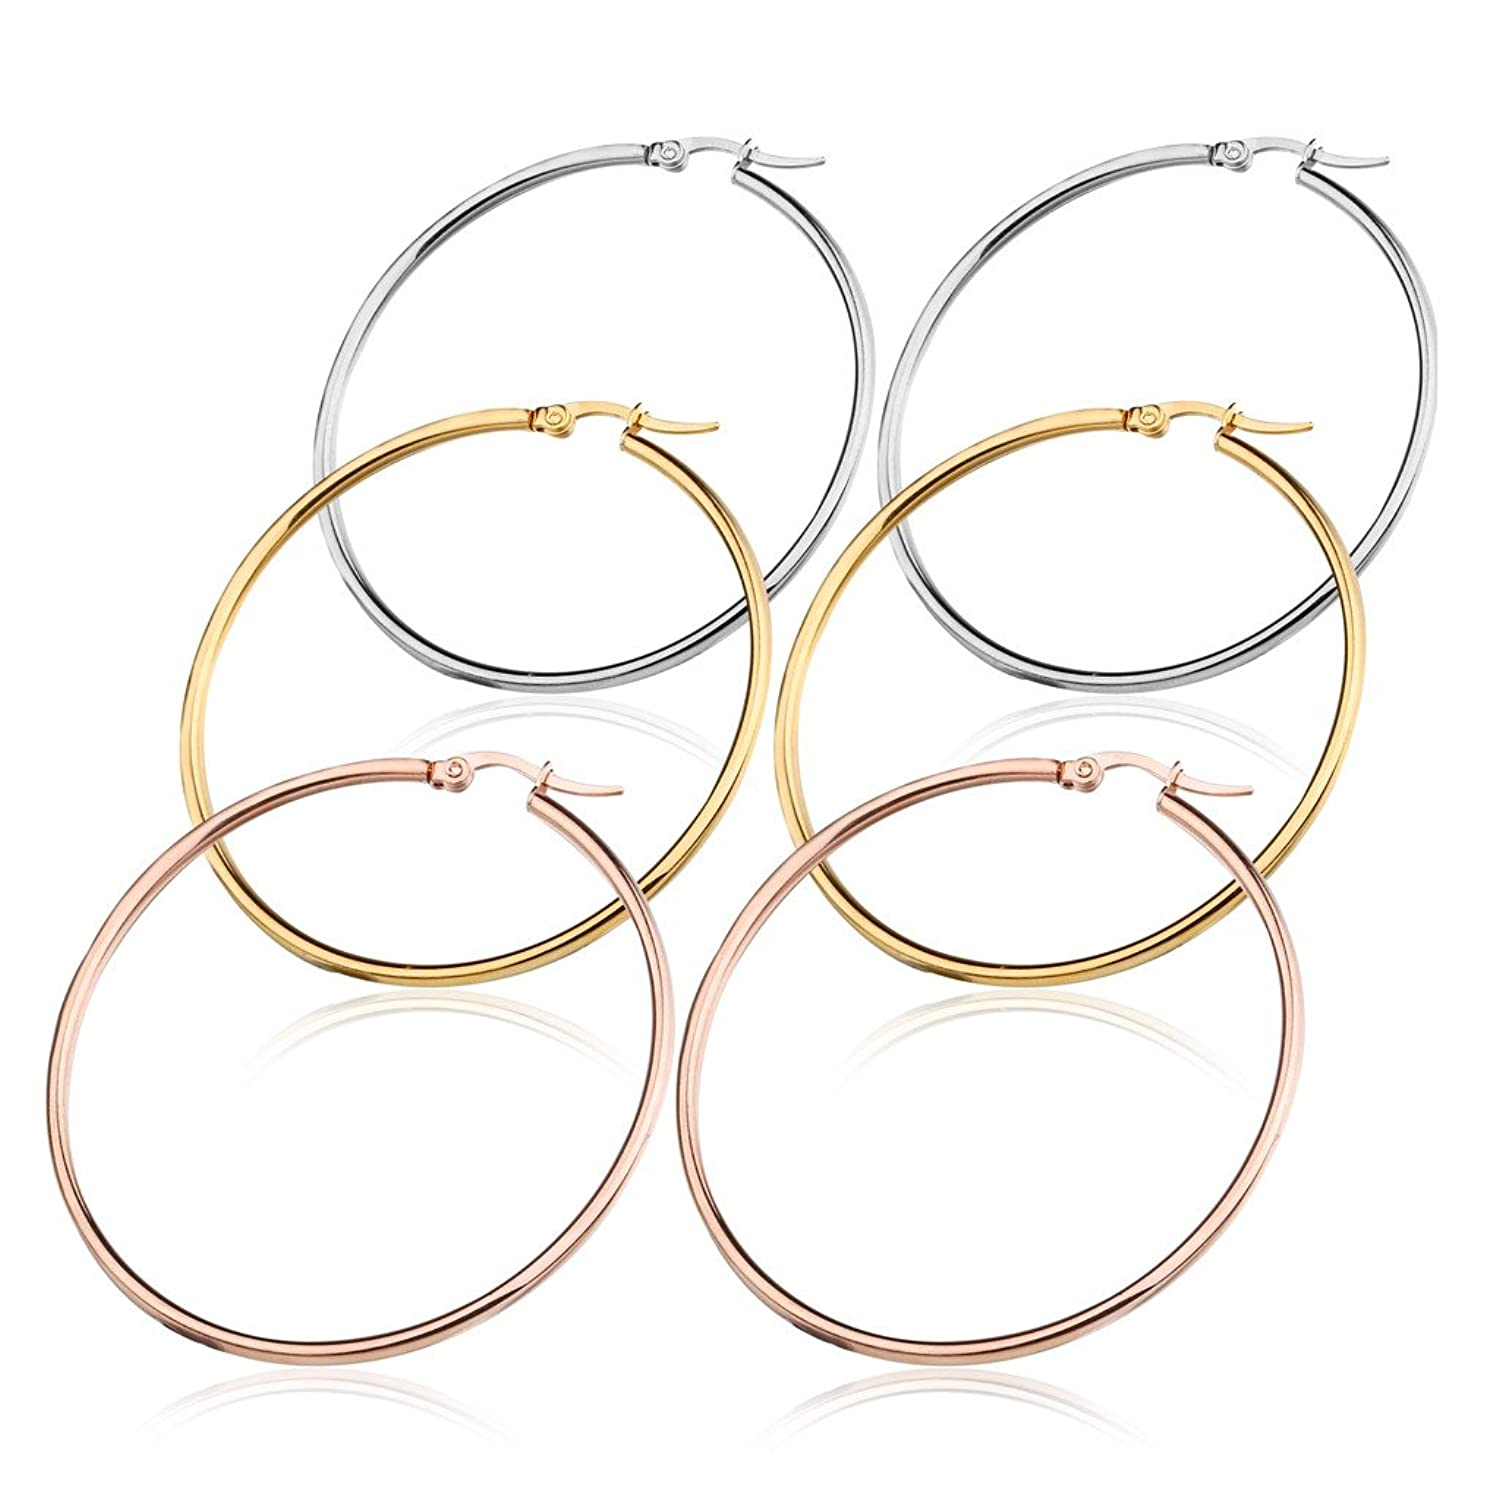 FIBO STEEL 3 Pairs Stainless Steel Hoop Earrings Set for Women 40-50mm